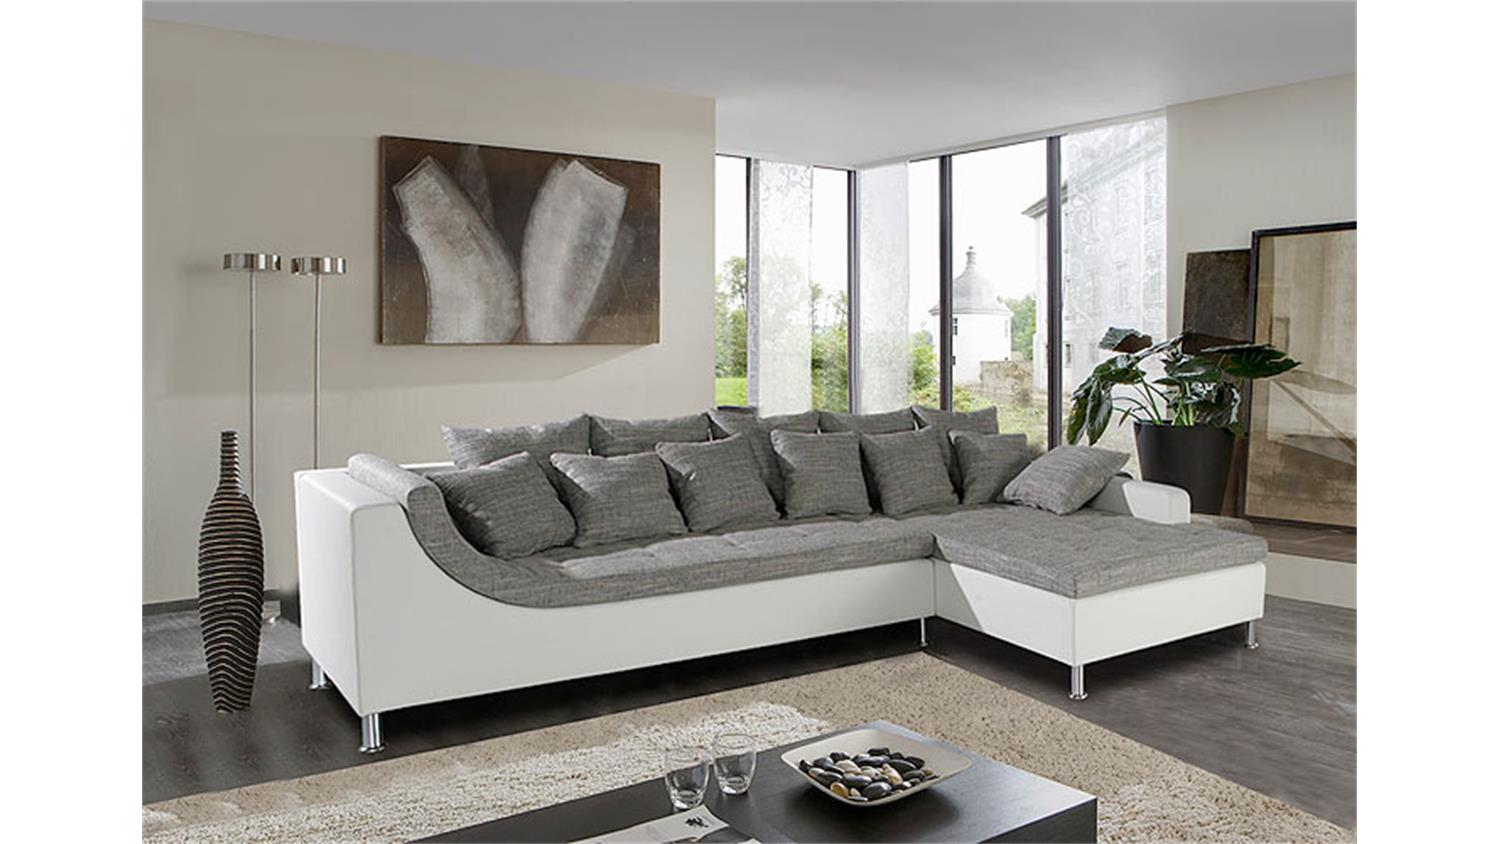 ecksofa montego sofa ottomane wei grau mit 6 r ckenkissen. Black Bedroom Furniture Sets. Home Design Ideas